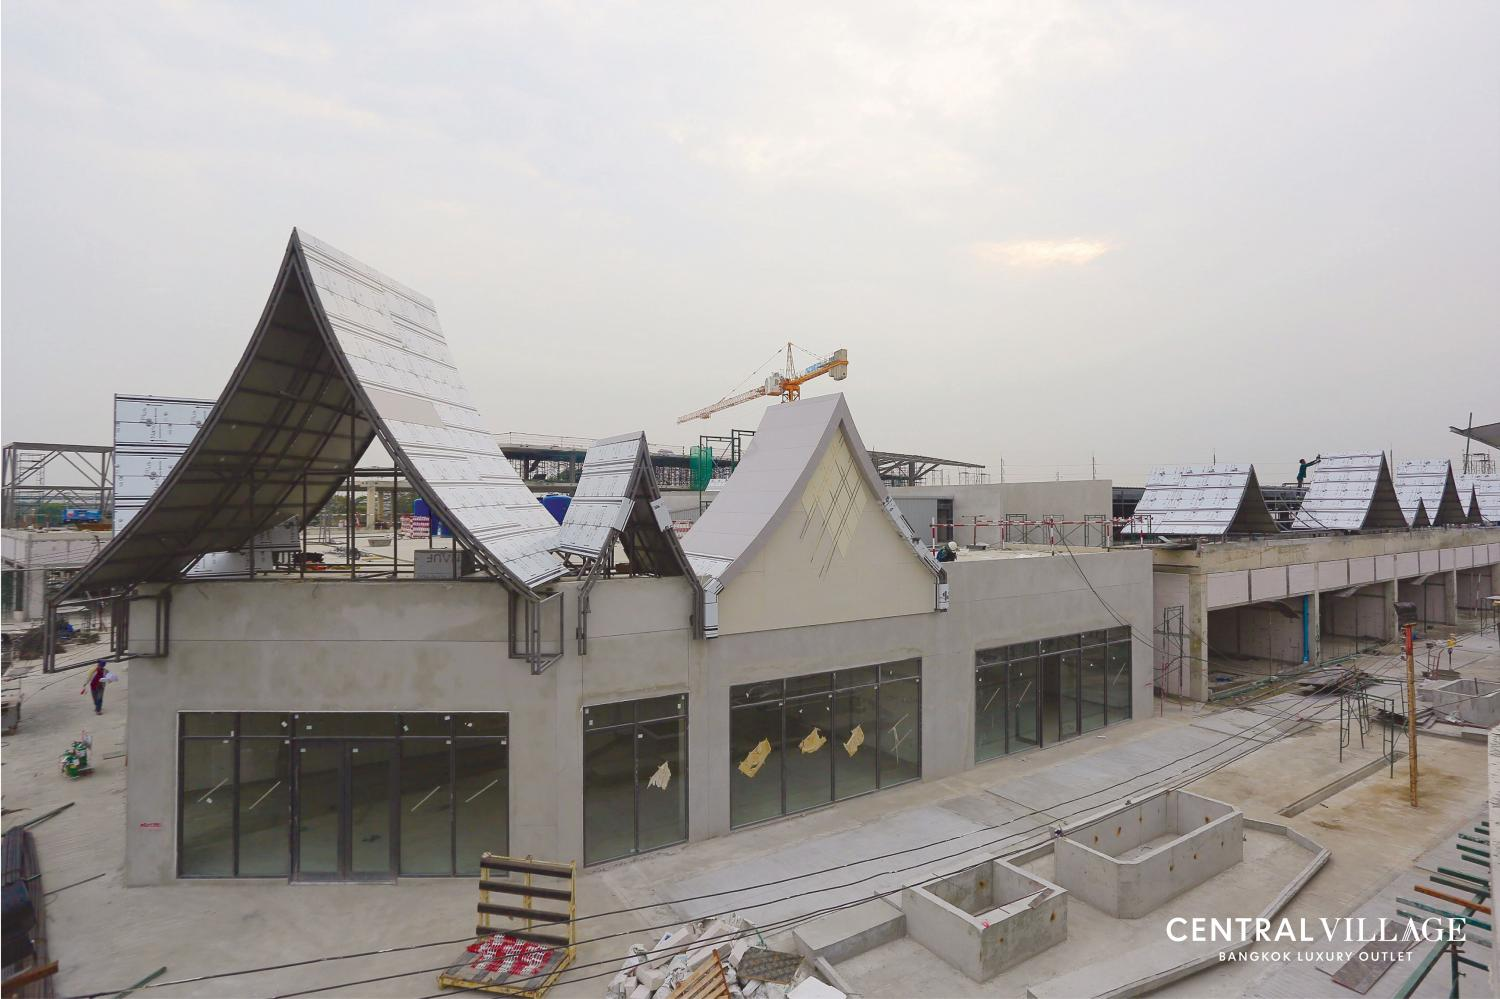 Central Village, which bills itself as Thailand's first international luxury outlet, is nearing completion in Samut Prakan province.